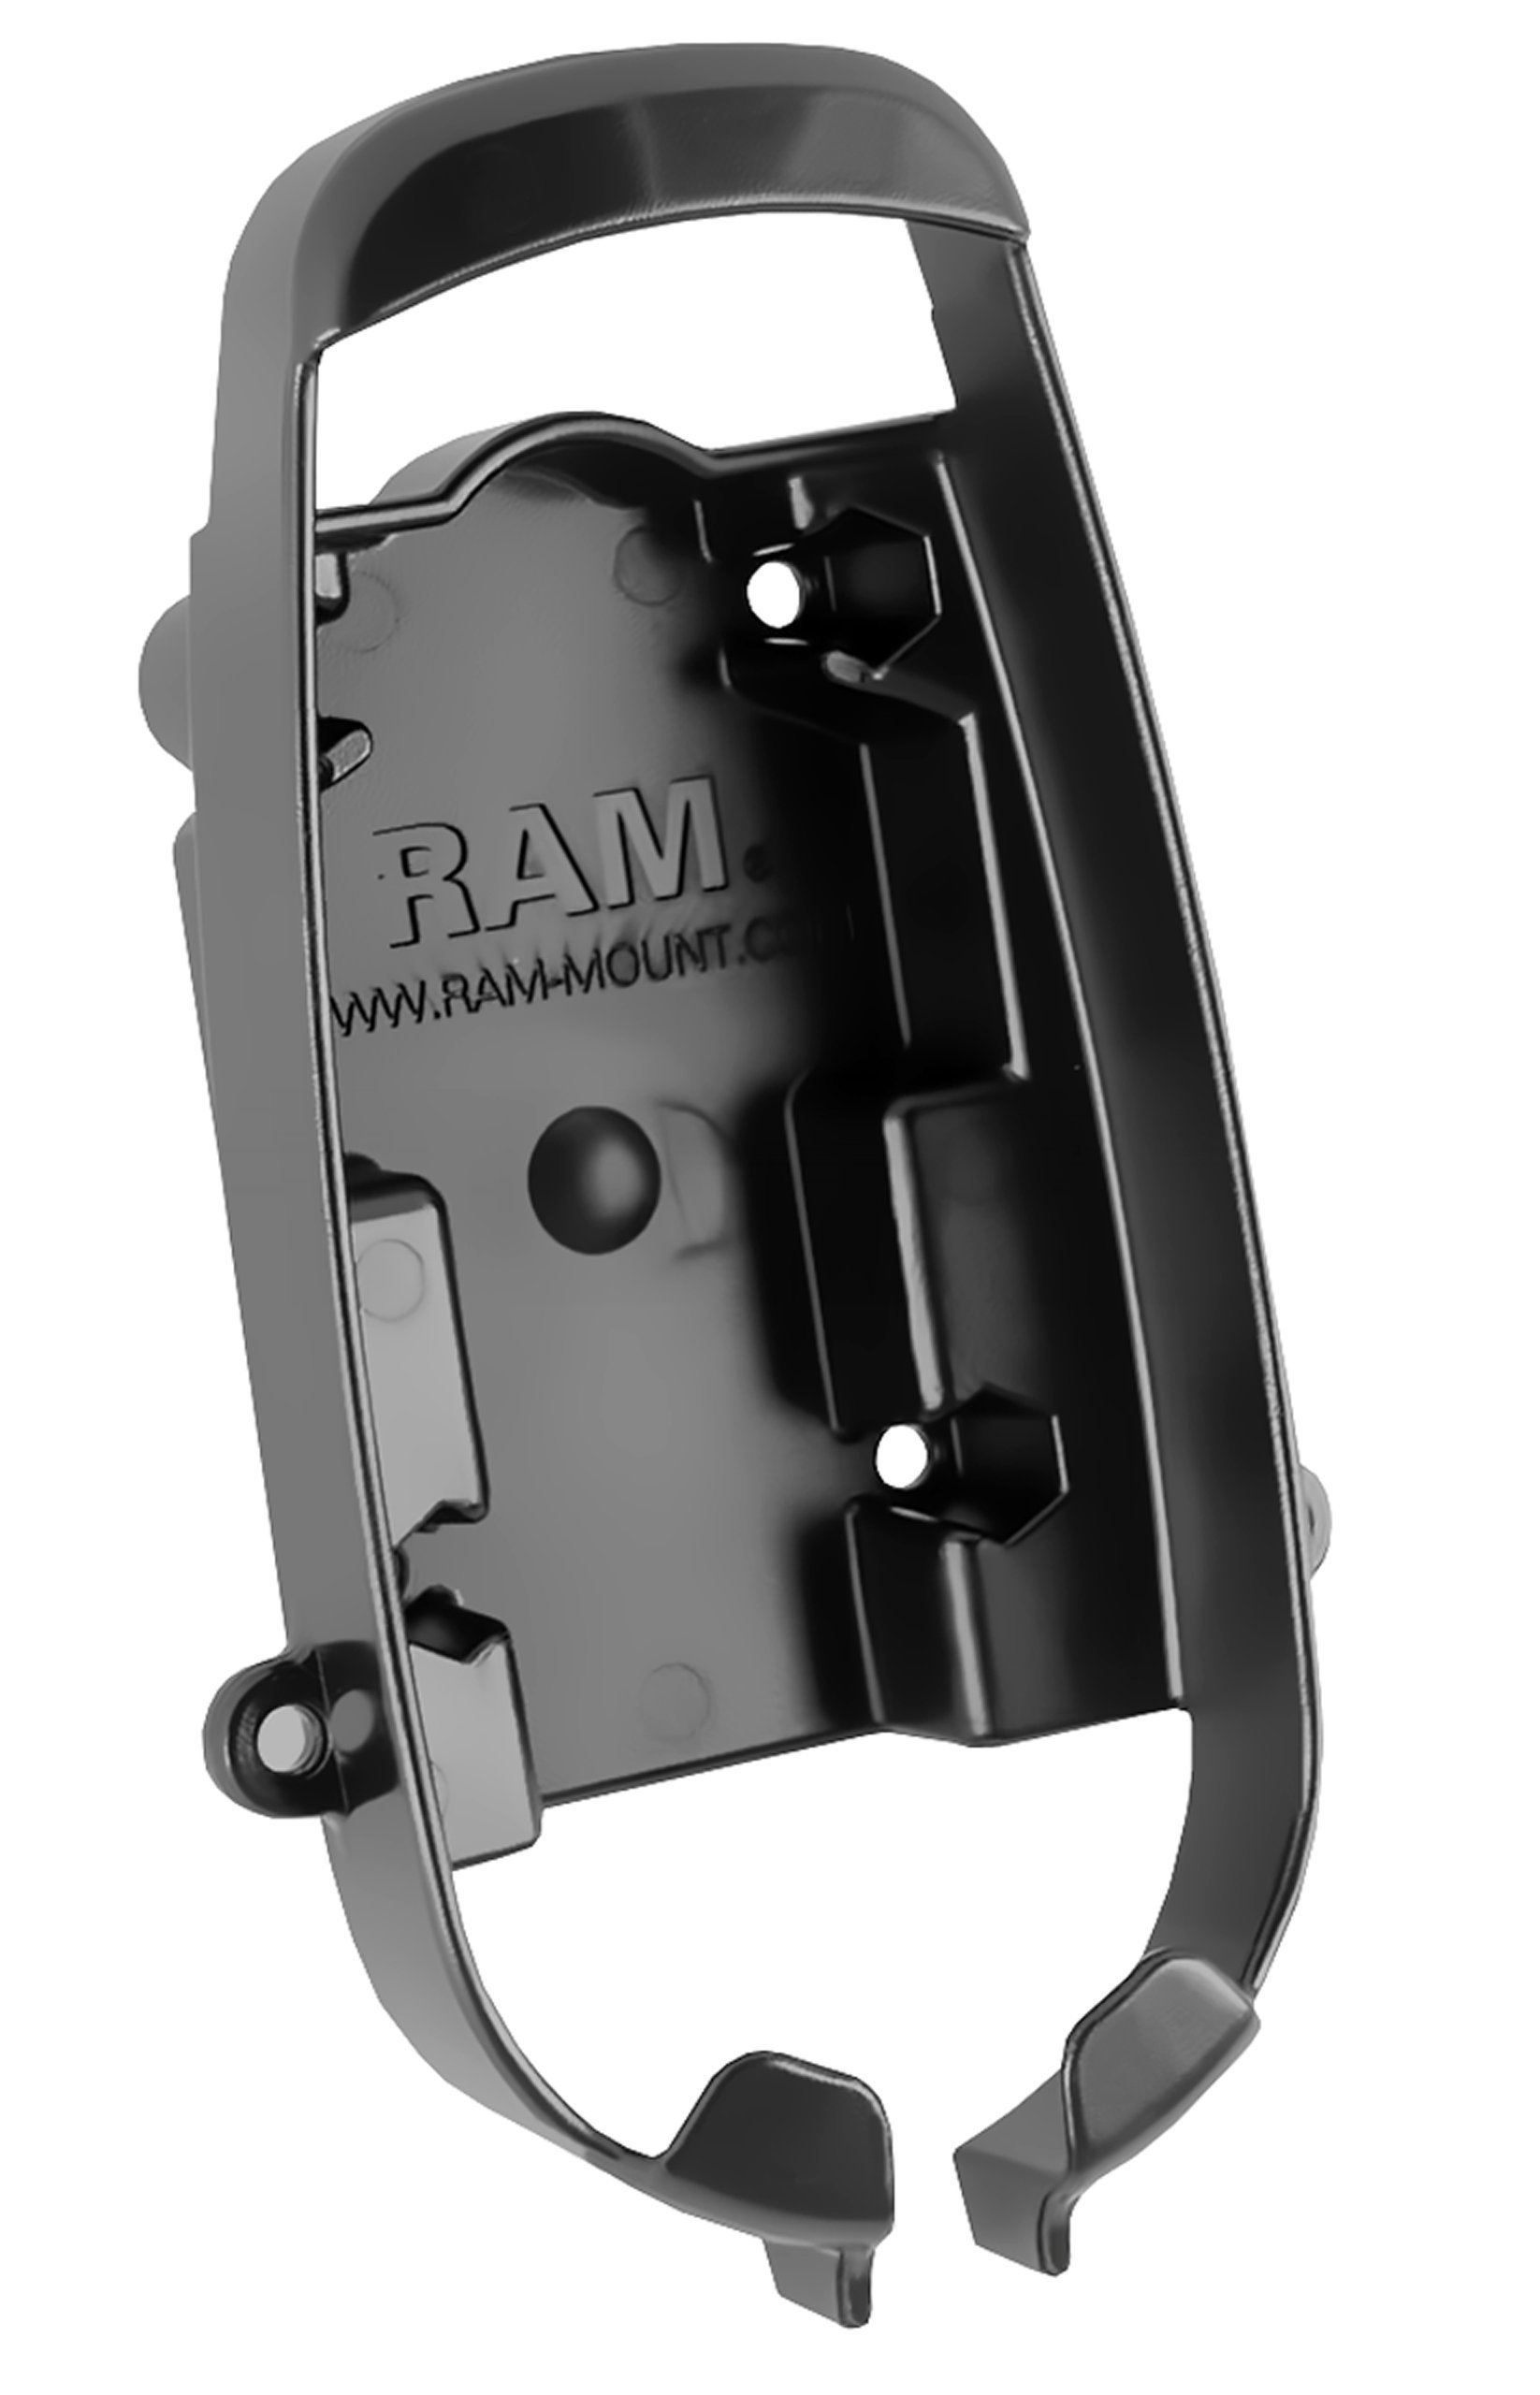 Ram Mount Cradle Holder for the Magellan Meridian Color, Gold, GPS, Marine, Ocean and Platinum